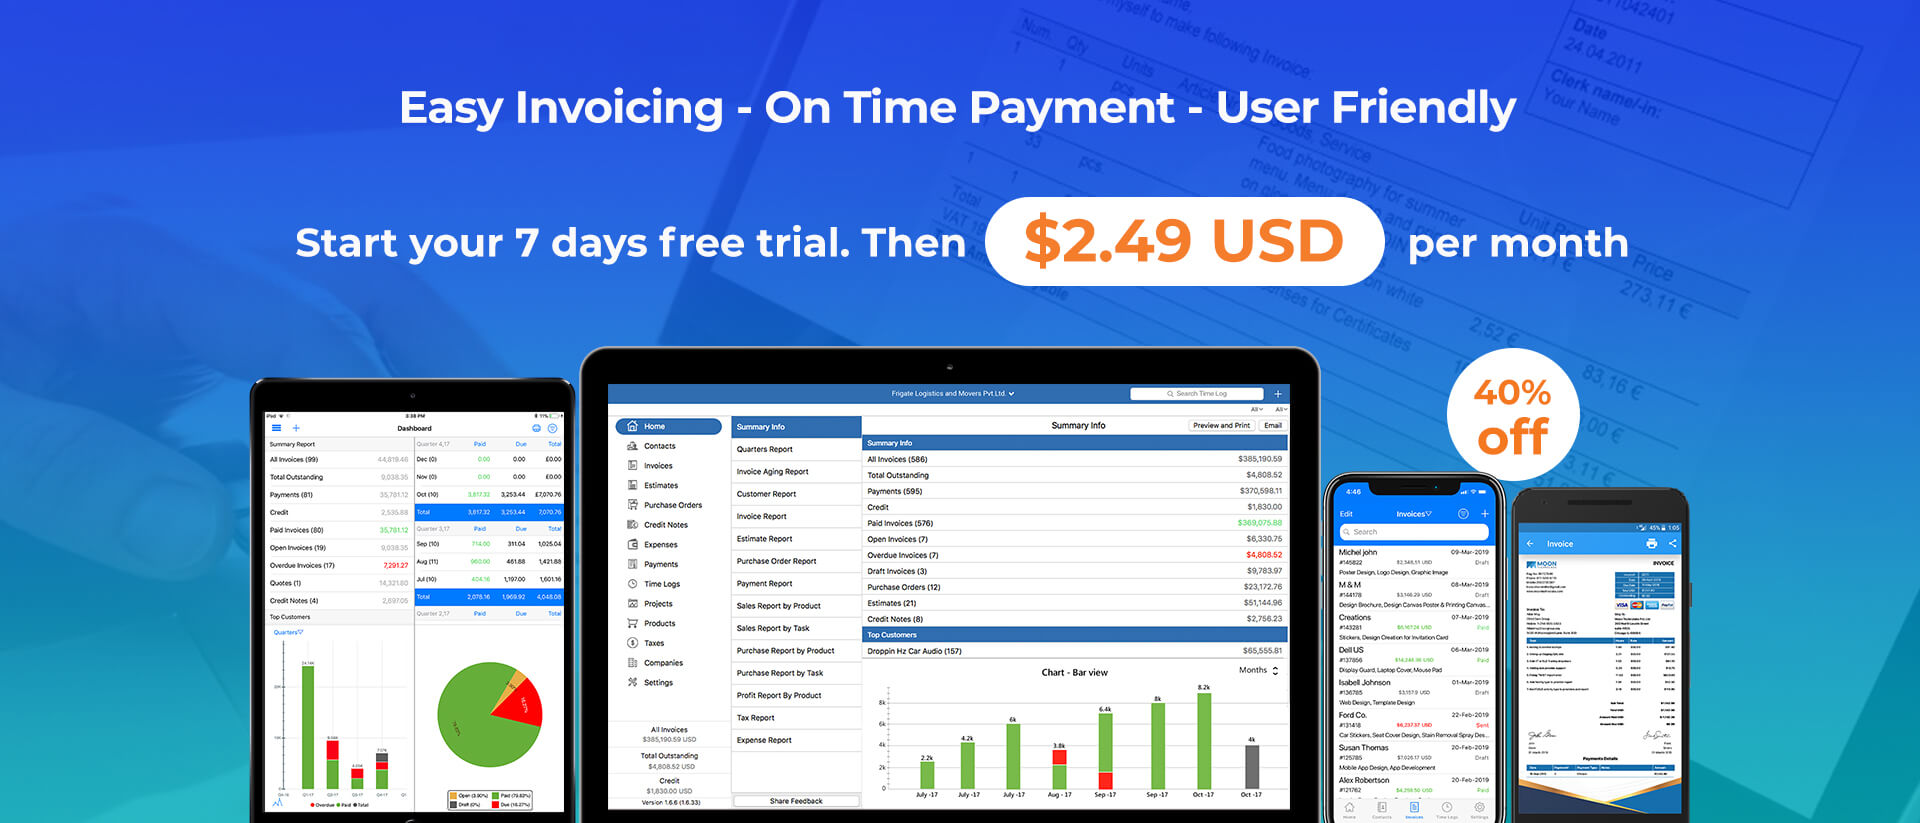 Try 7 Days Free Trial | Moon Invoice - Easy Invoicing App